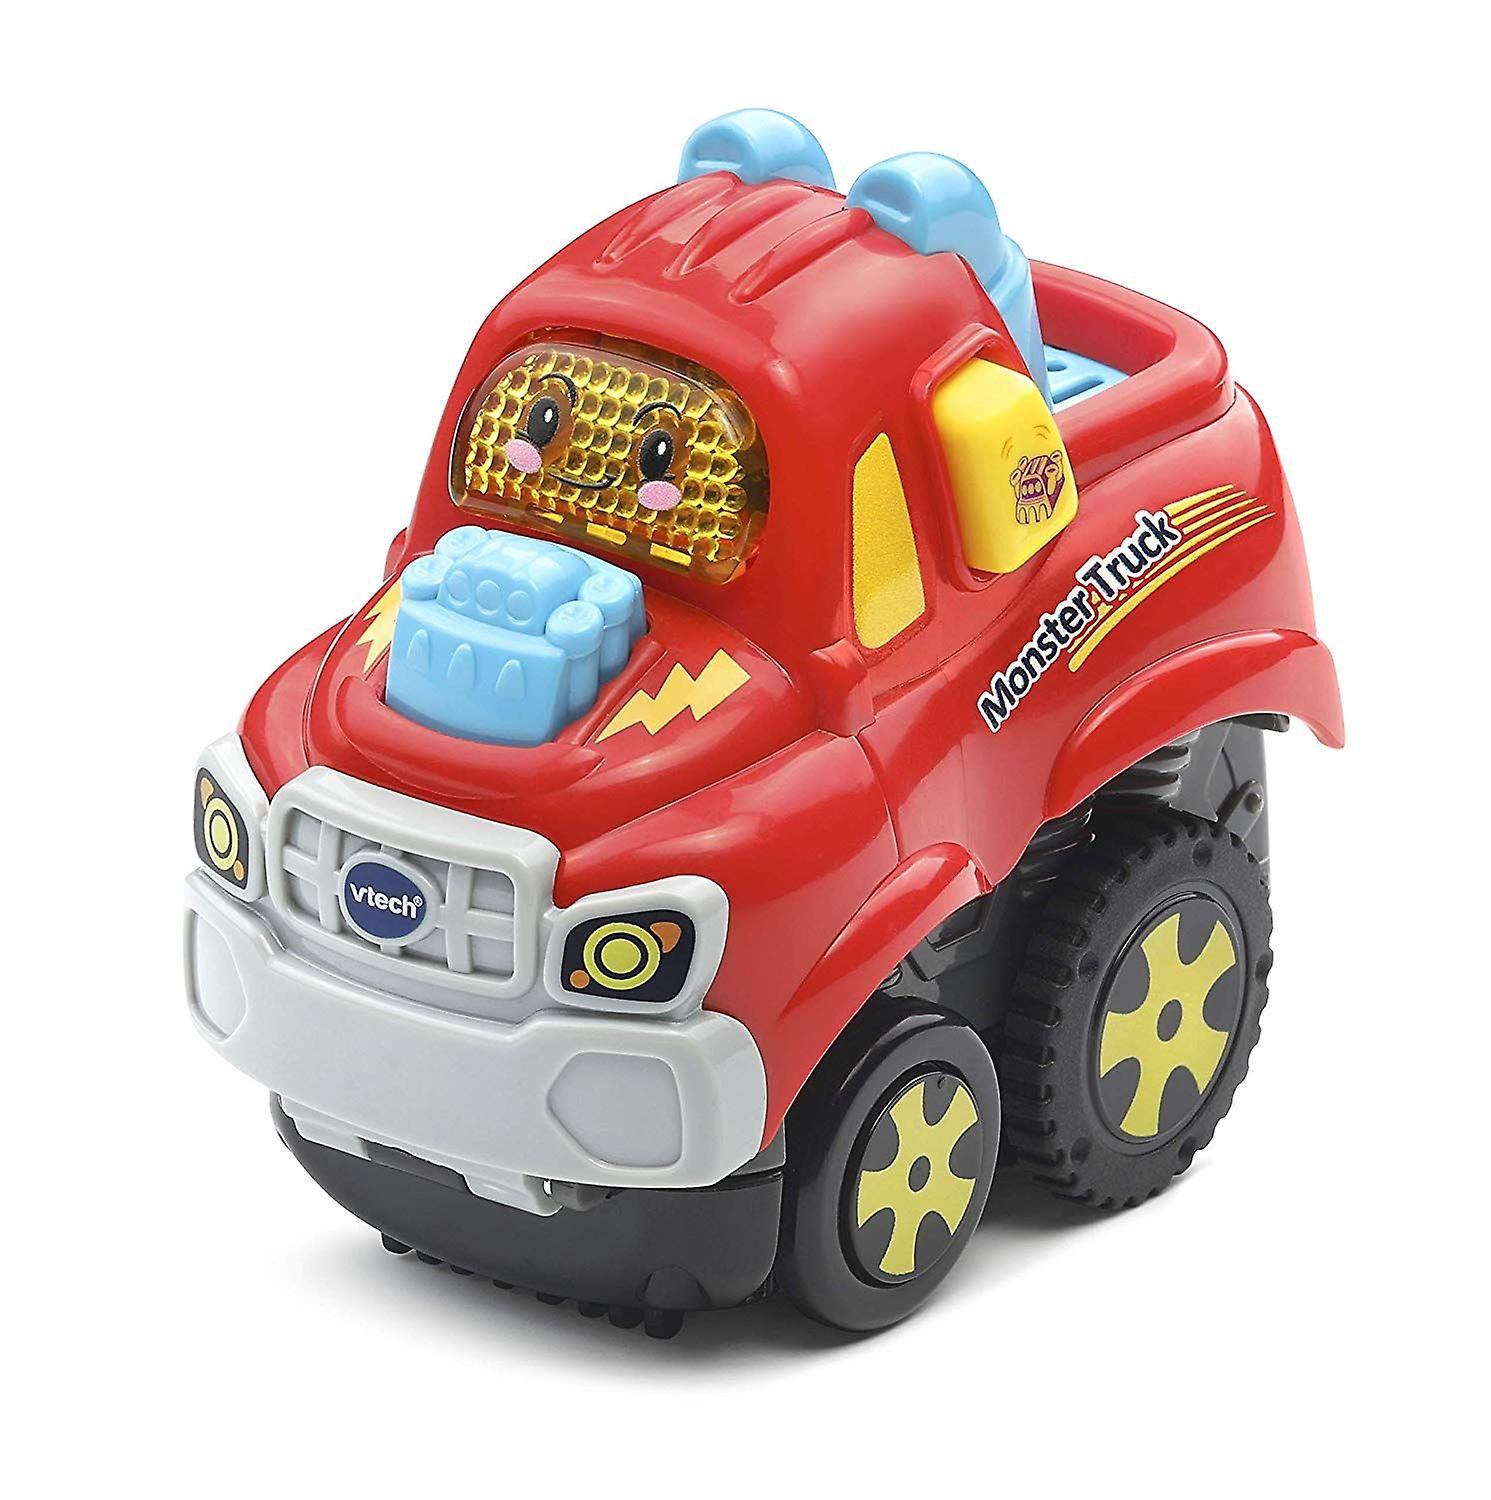 TOOT-TOOT DRIVERS PRESS 'N' GO MONSTER TRUCK